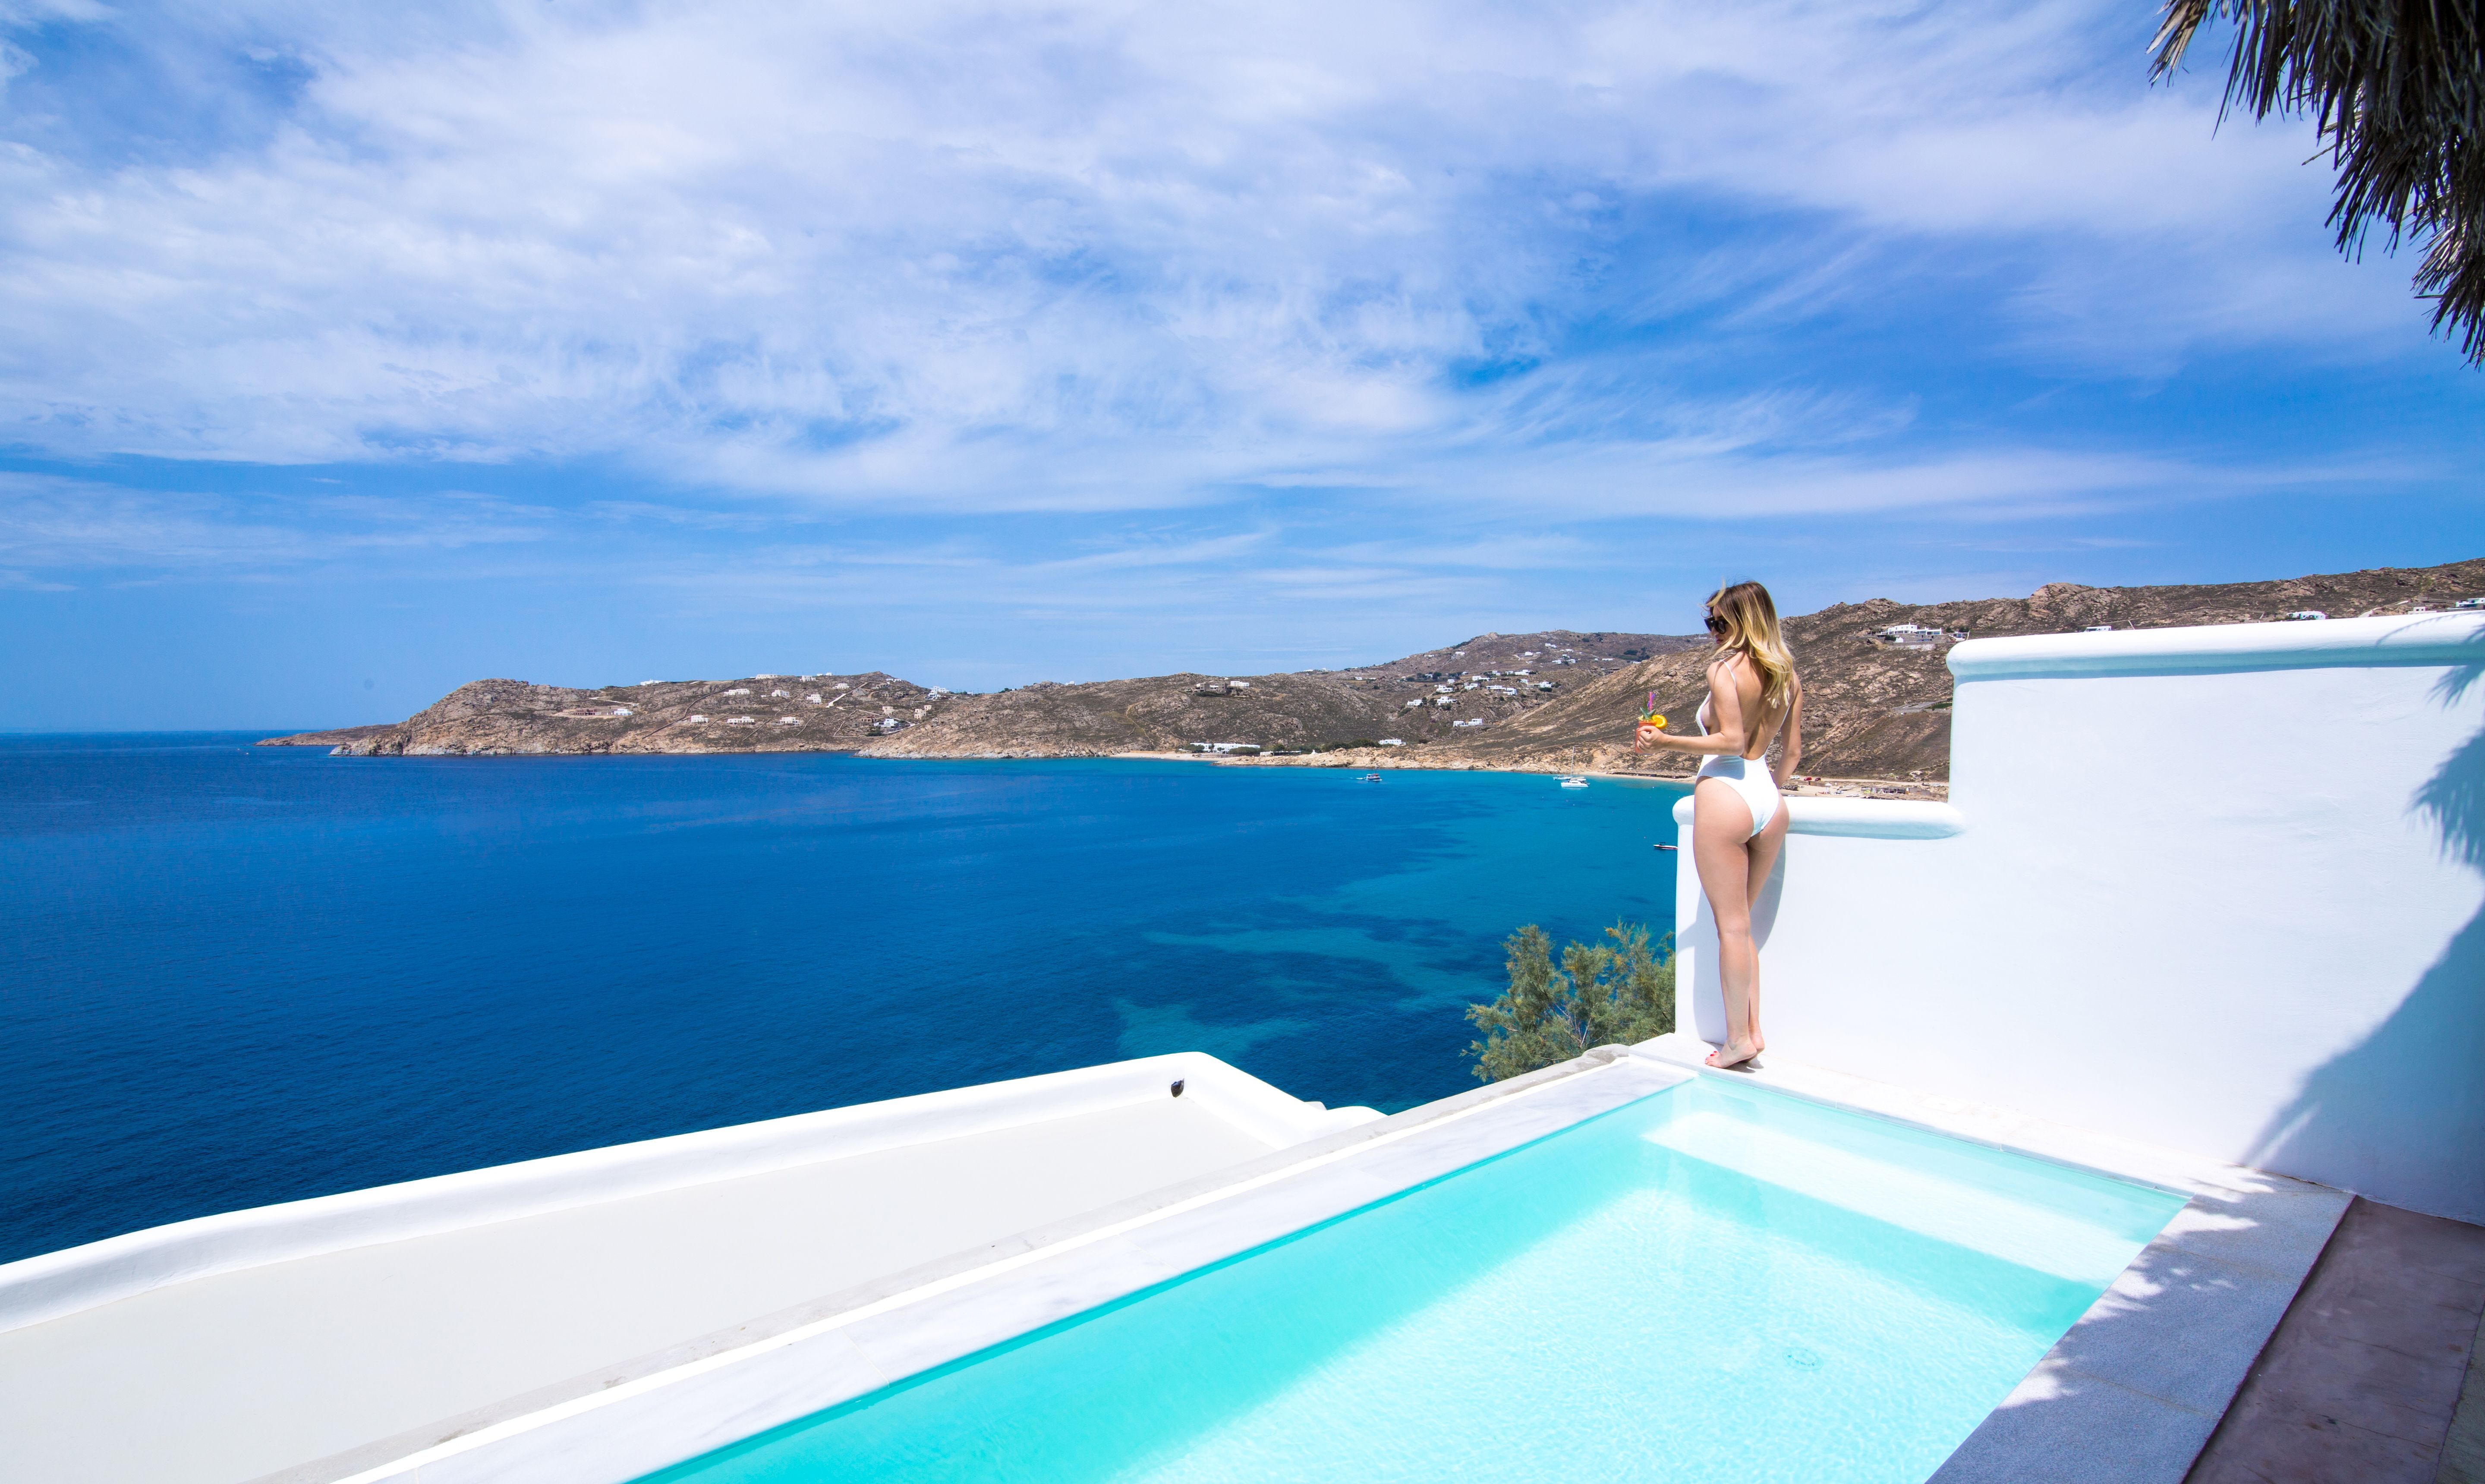 Qualia Jacuzzi Pool Villa Pin By Greco Philia Hotel Boutique On Pools With Sea Views In